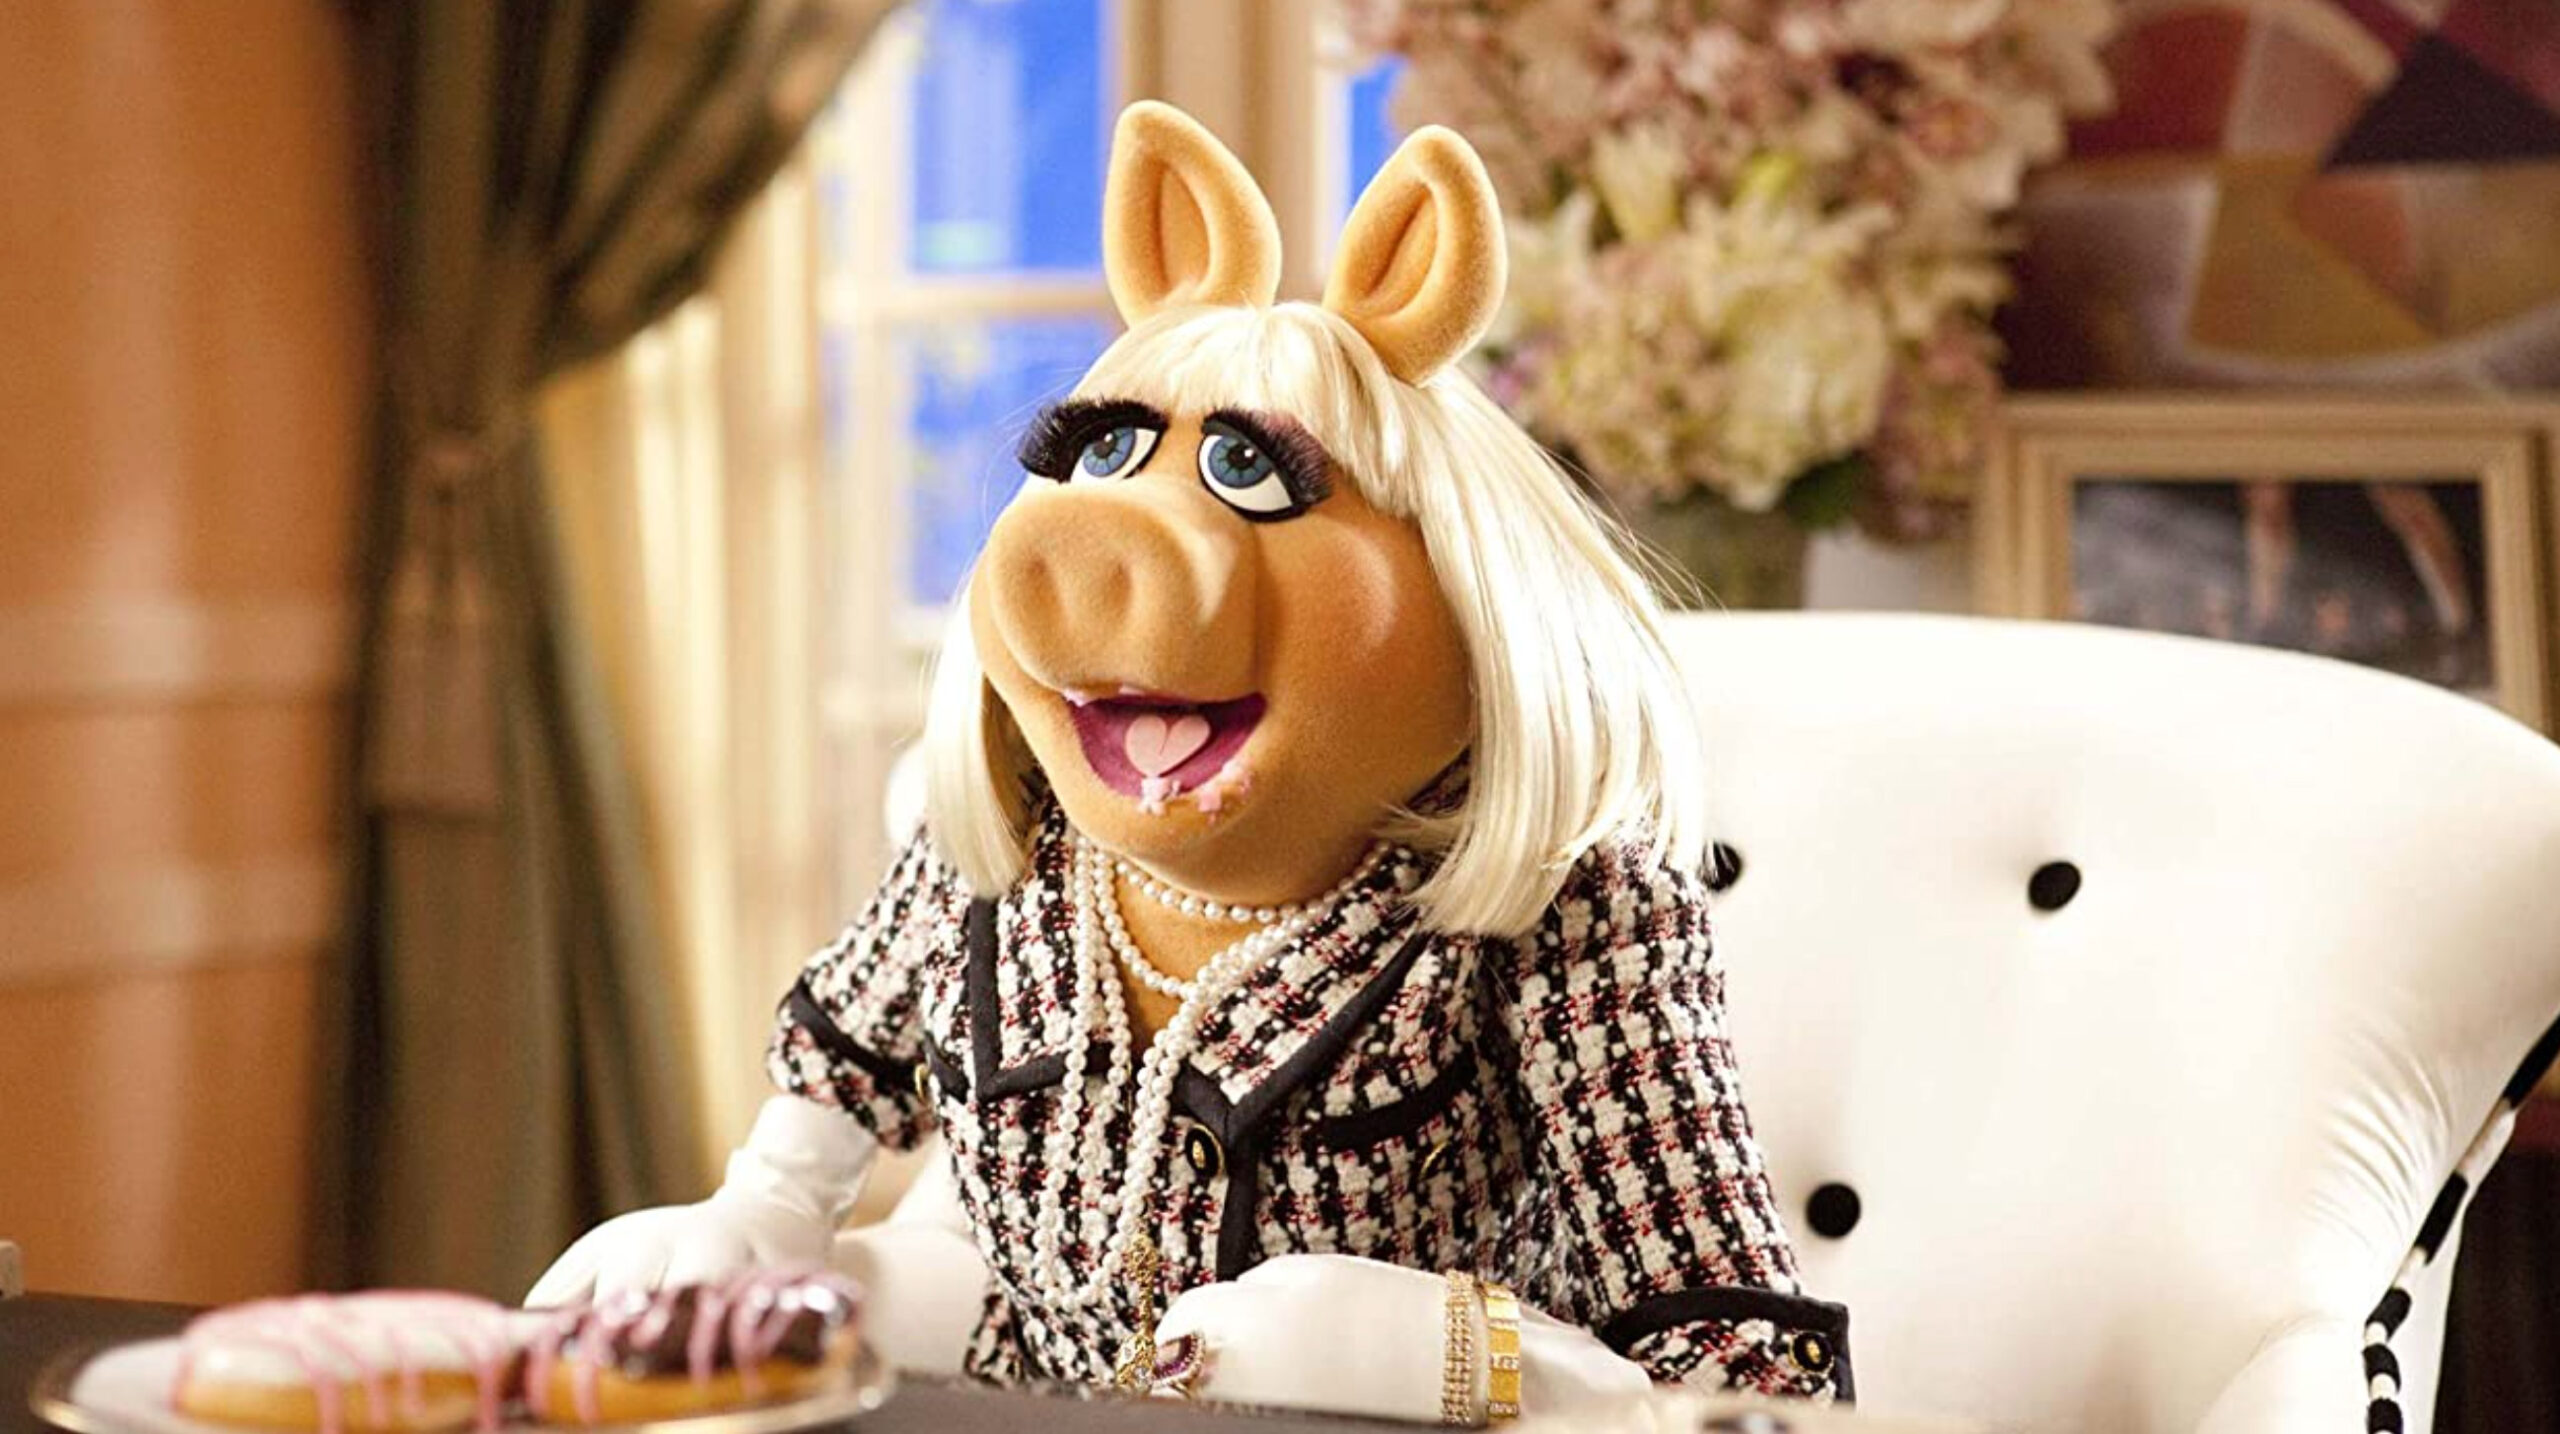 miss piggy's mouth open with donuts in her mouth. She's sitting down on a white chair.